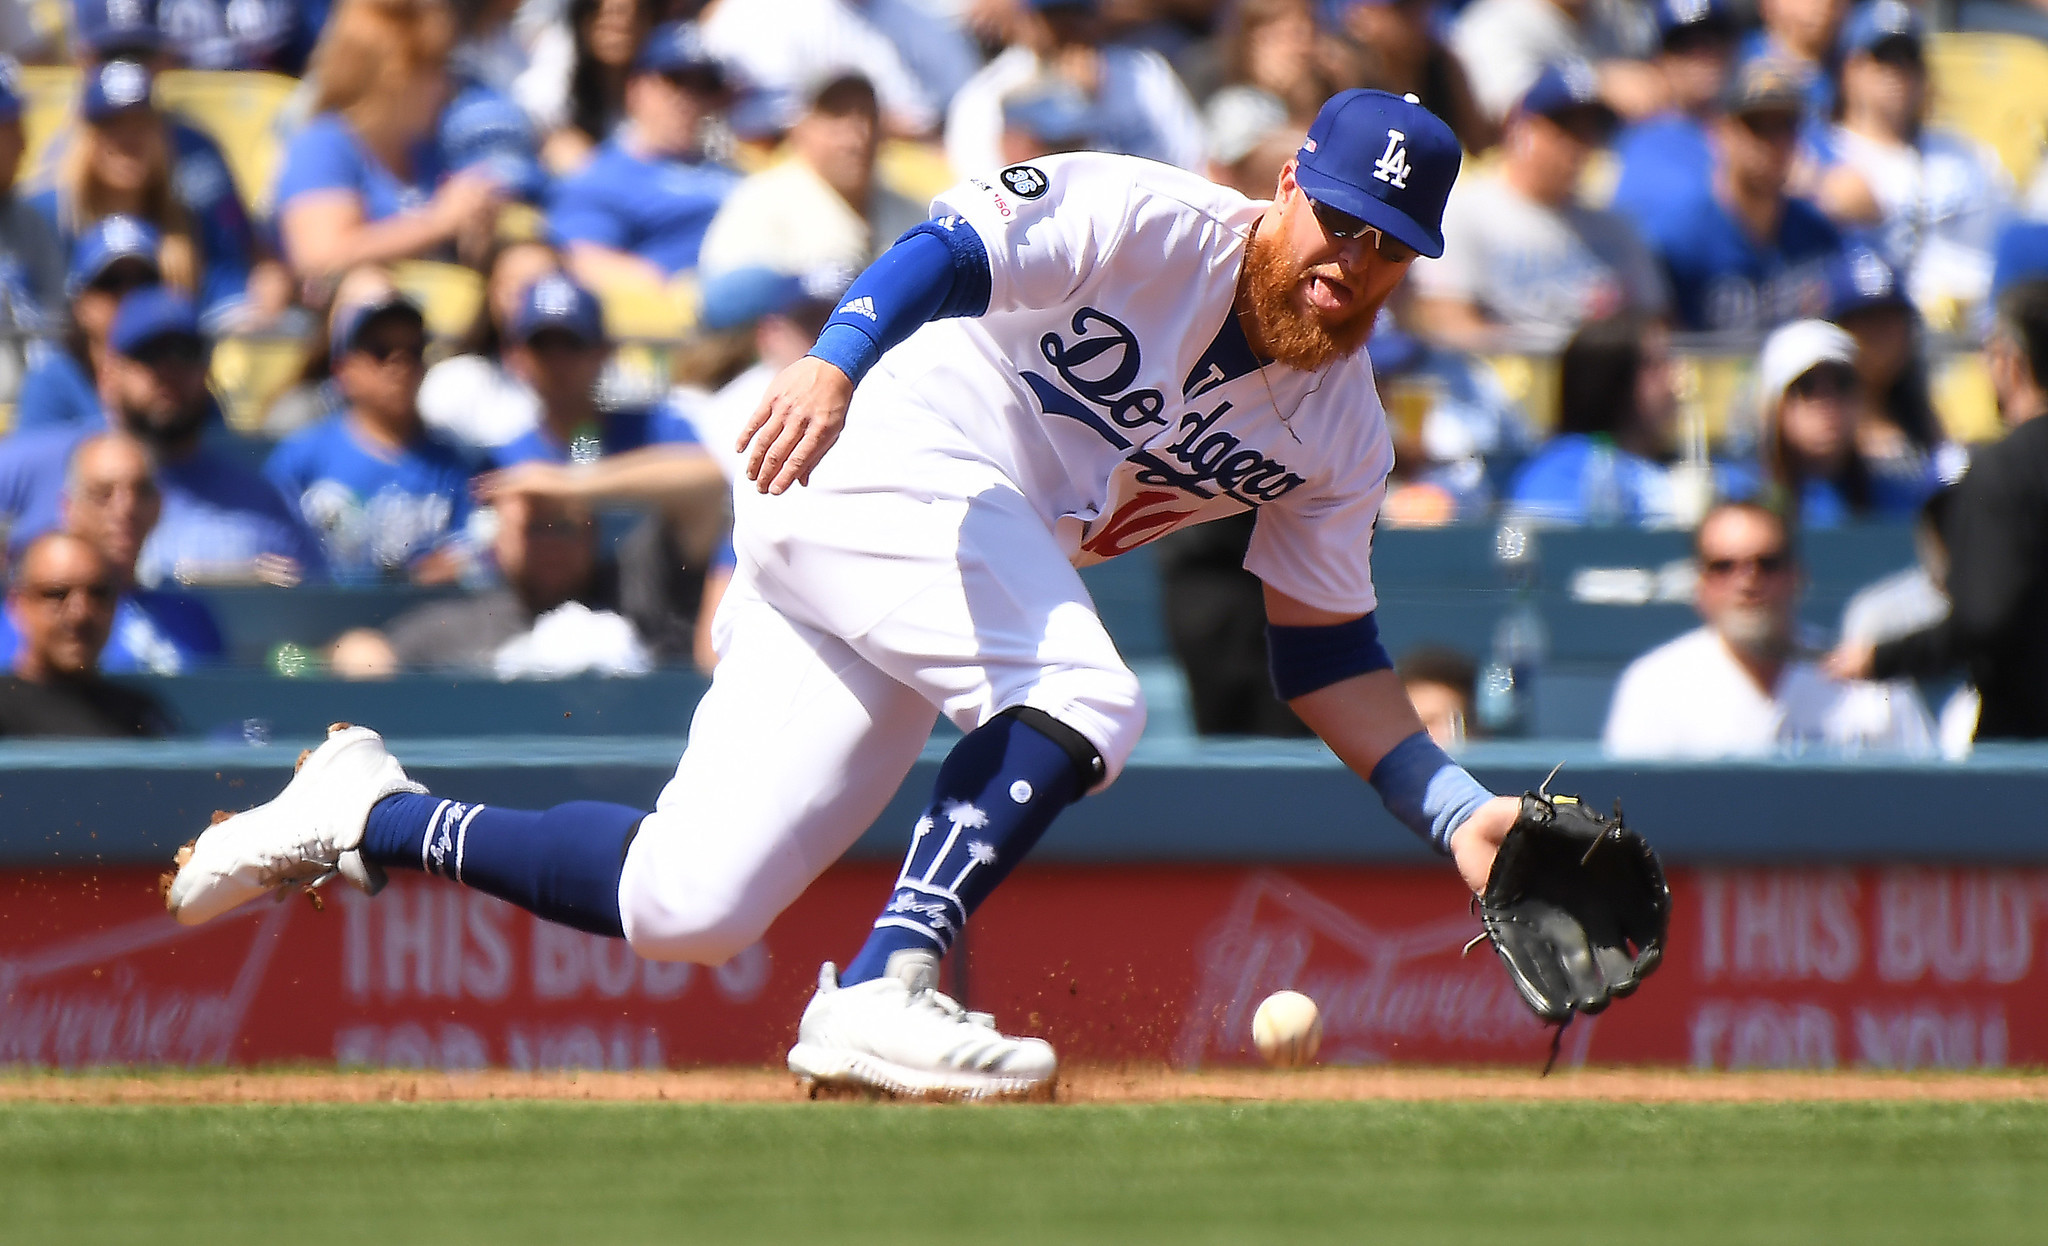 LOS ANGELES, CALIFORNIA MARCH 25, 2019-Dodgers third baseman Justin Turner leans to catch a ground bal